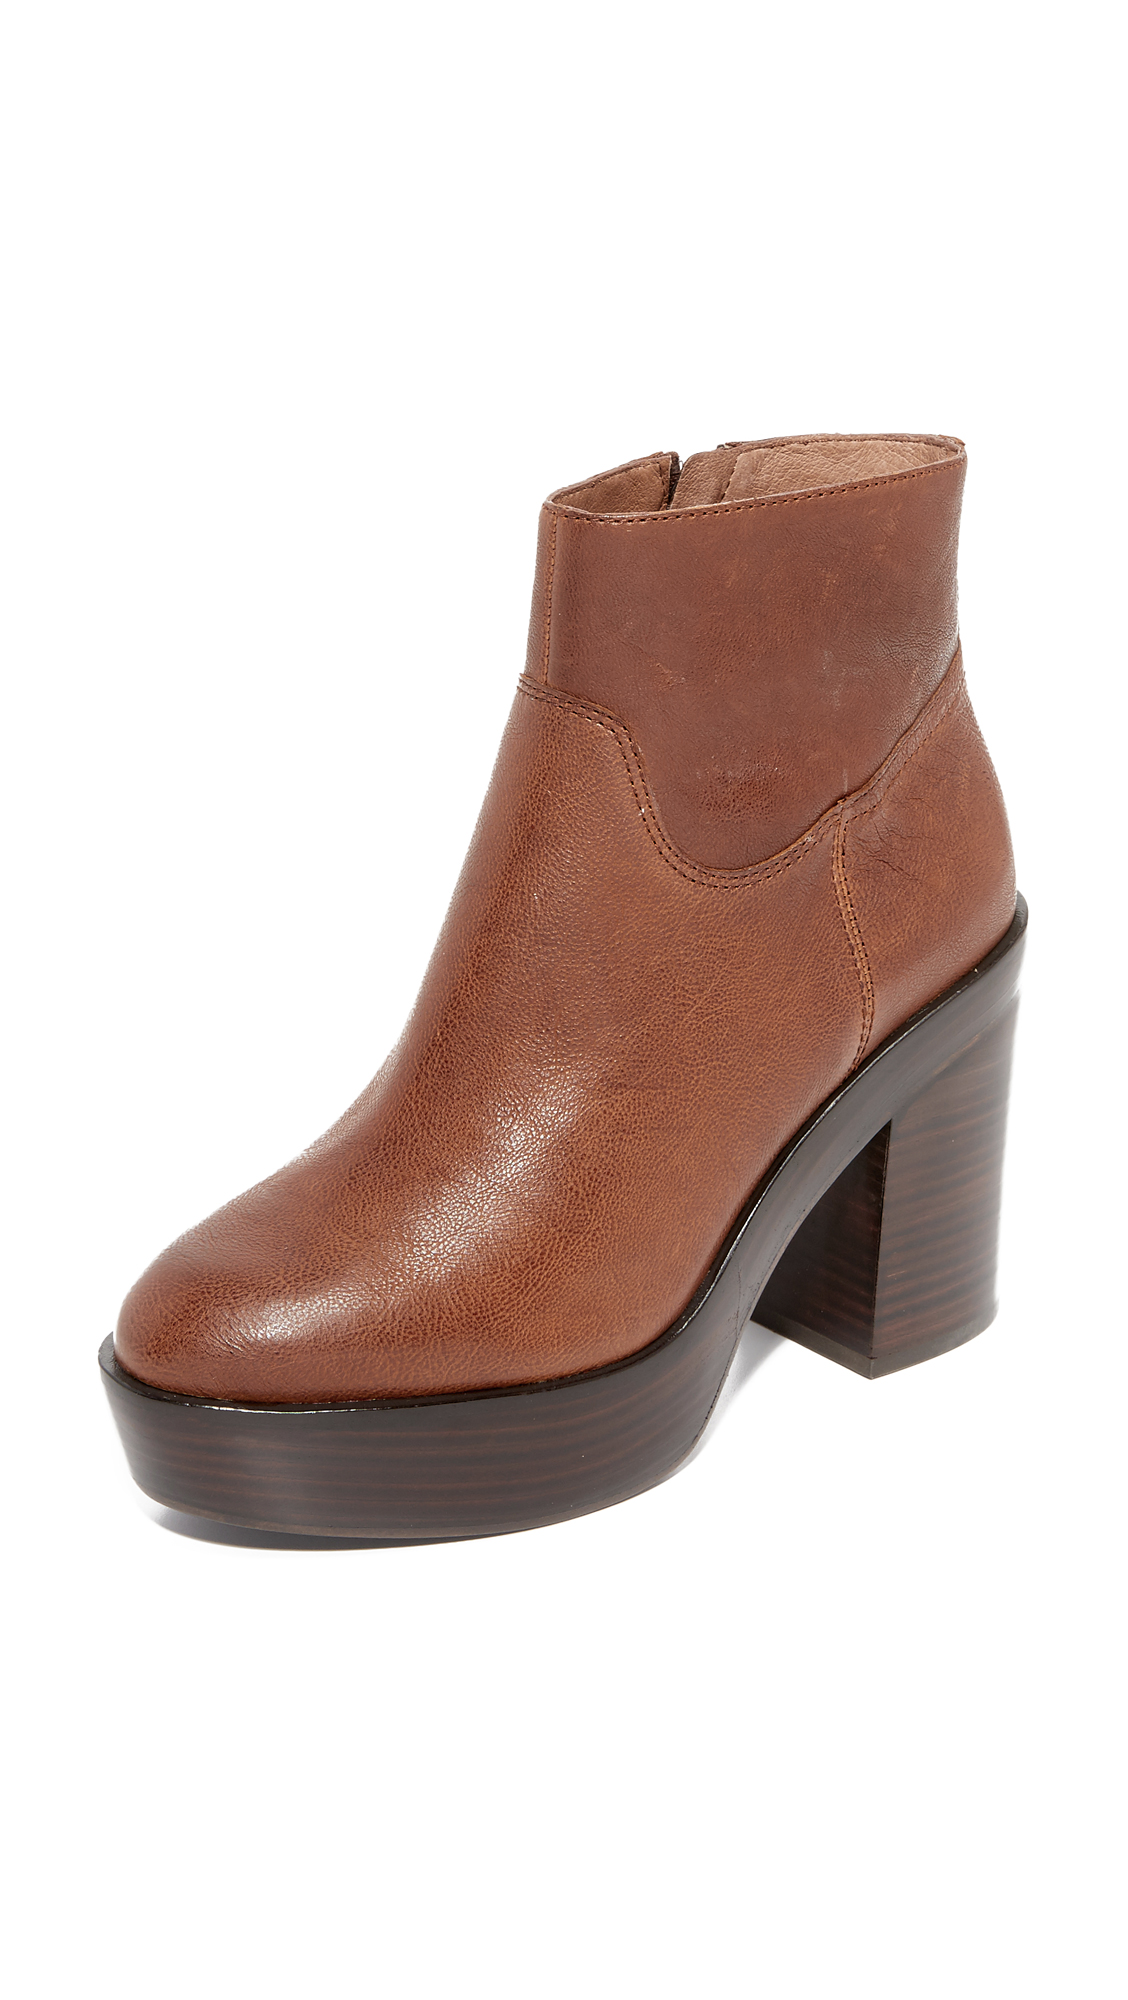 A stacked platform adds a substantial lift to these pebbled leather Ash booties. Exposed side zip. Chunky heel and leather sole. Leather: Calfskin. Imported, China. This item cannot be gift boxed. Measurements Heel: 3.75in / 95mm Platform: 1.5